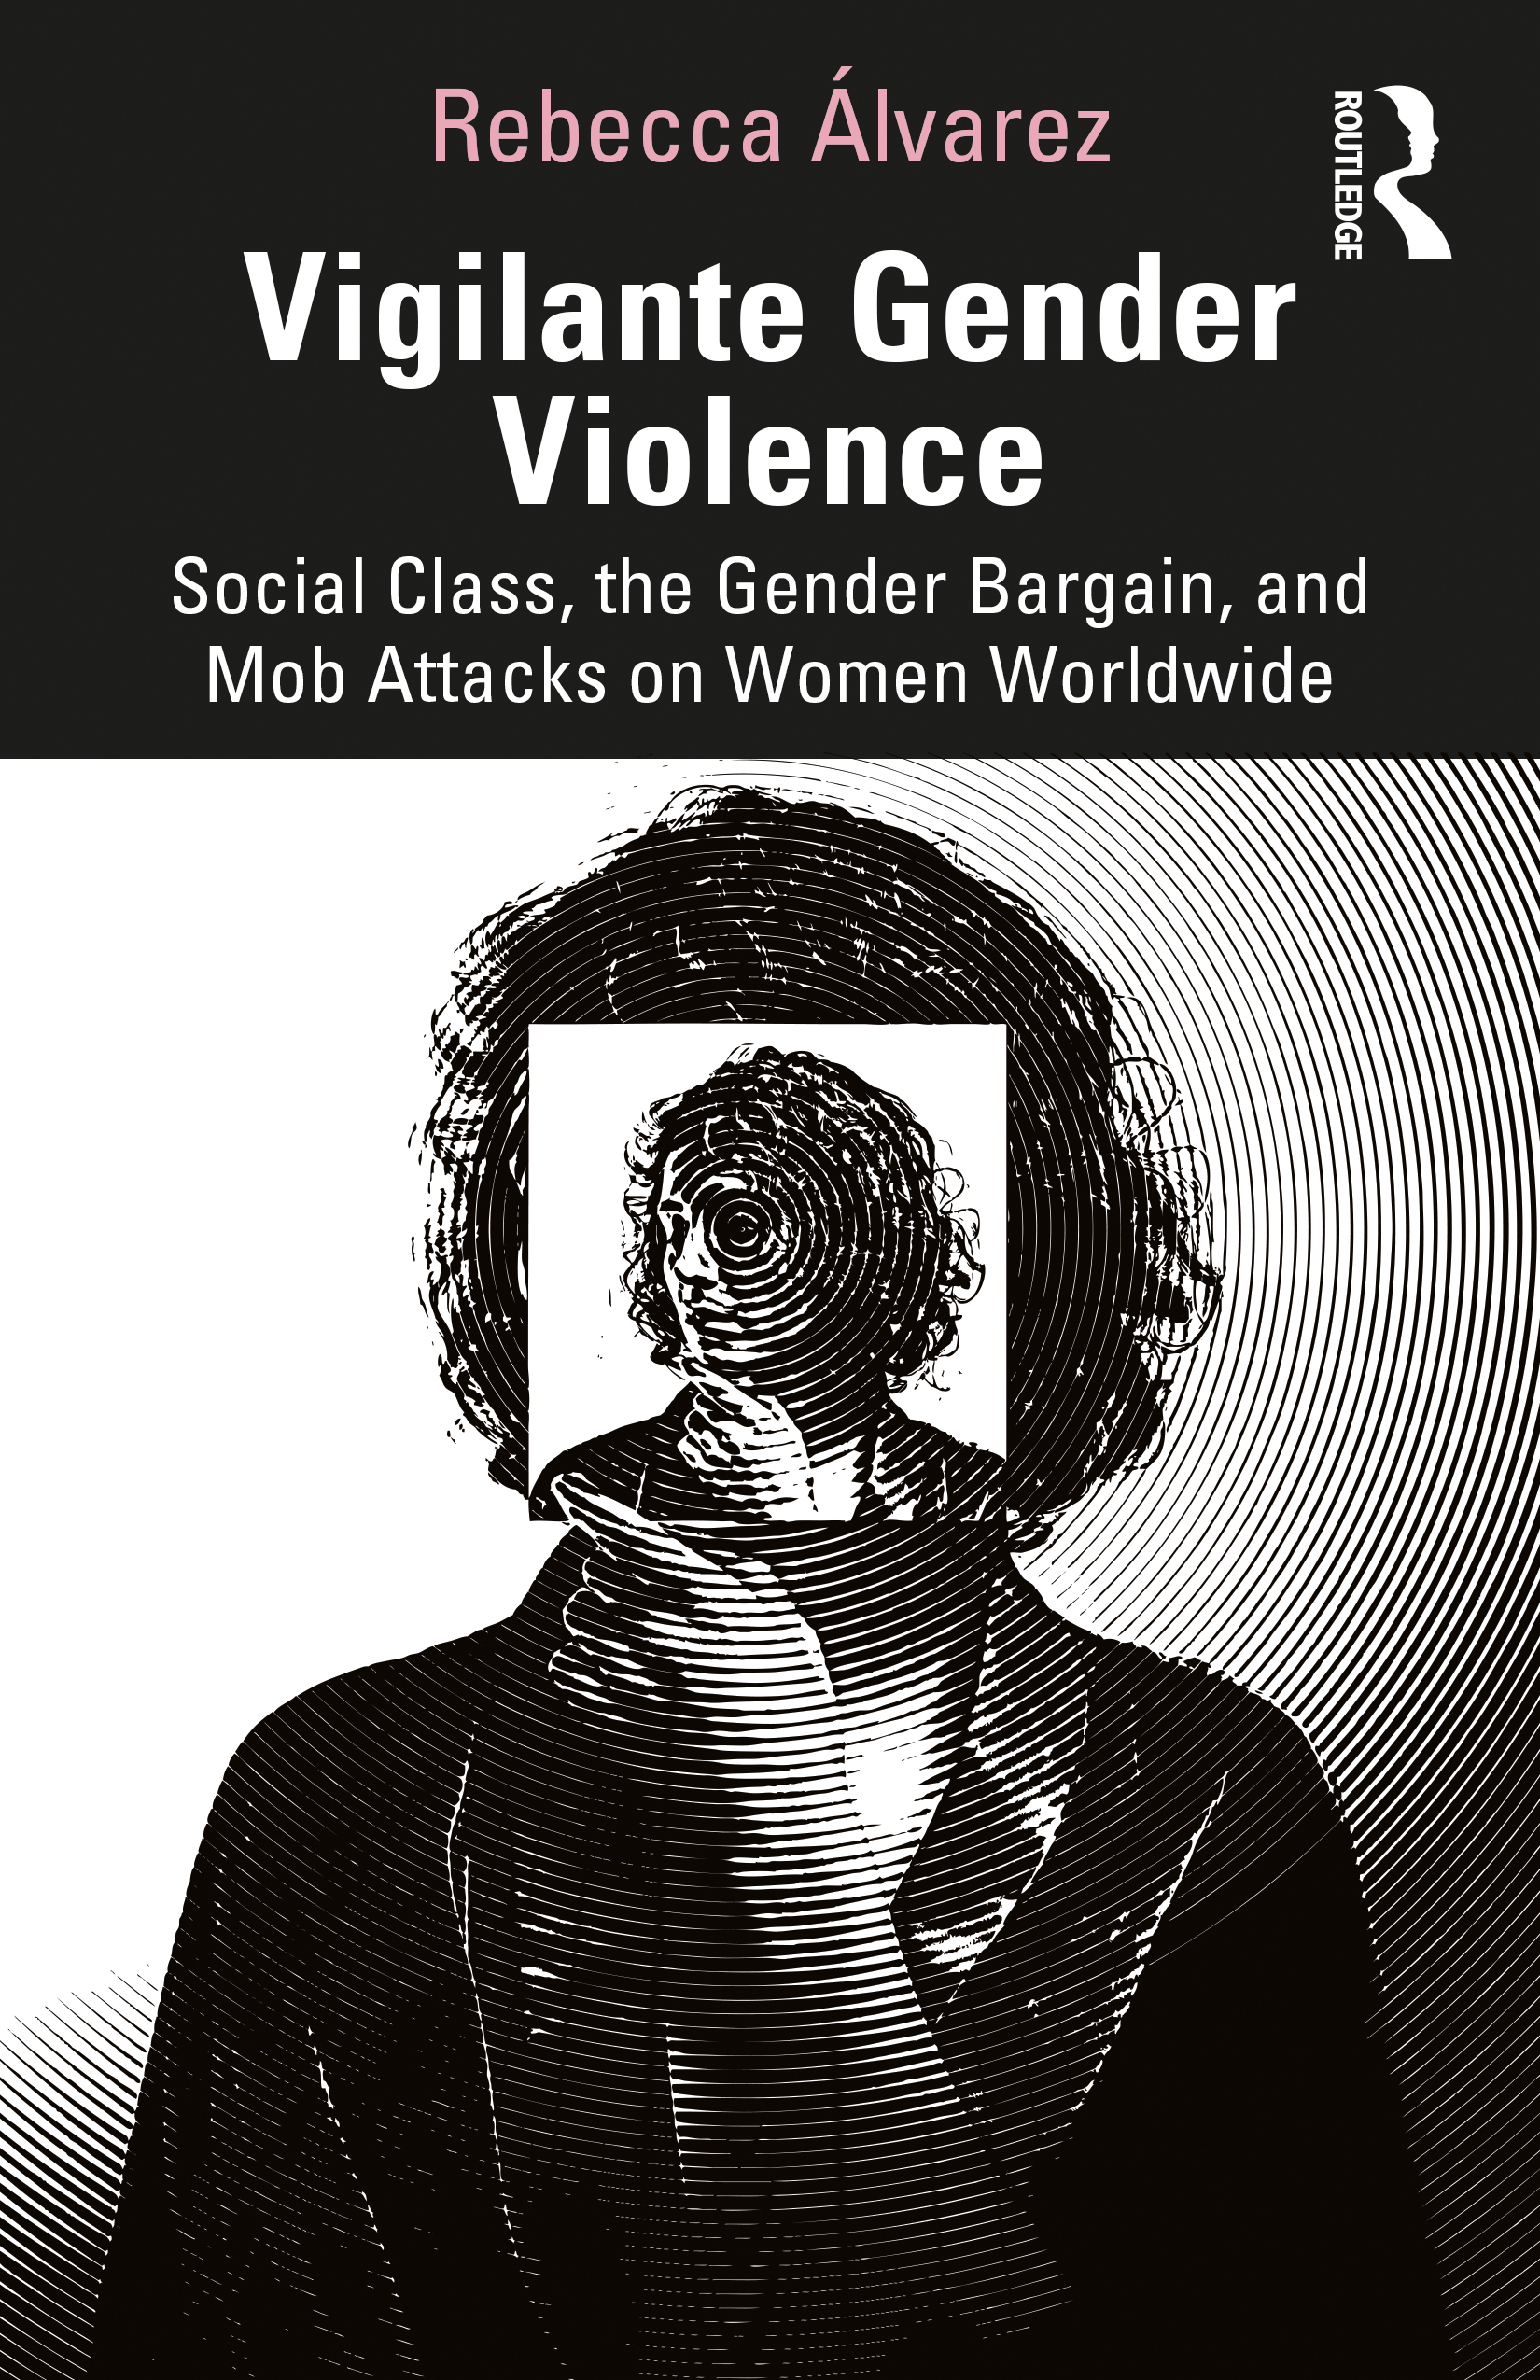 Vigilante Gender Violence: Social Class, the Gender Bargain, and Mob Attacks on Women Worldwide book cover